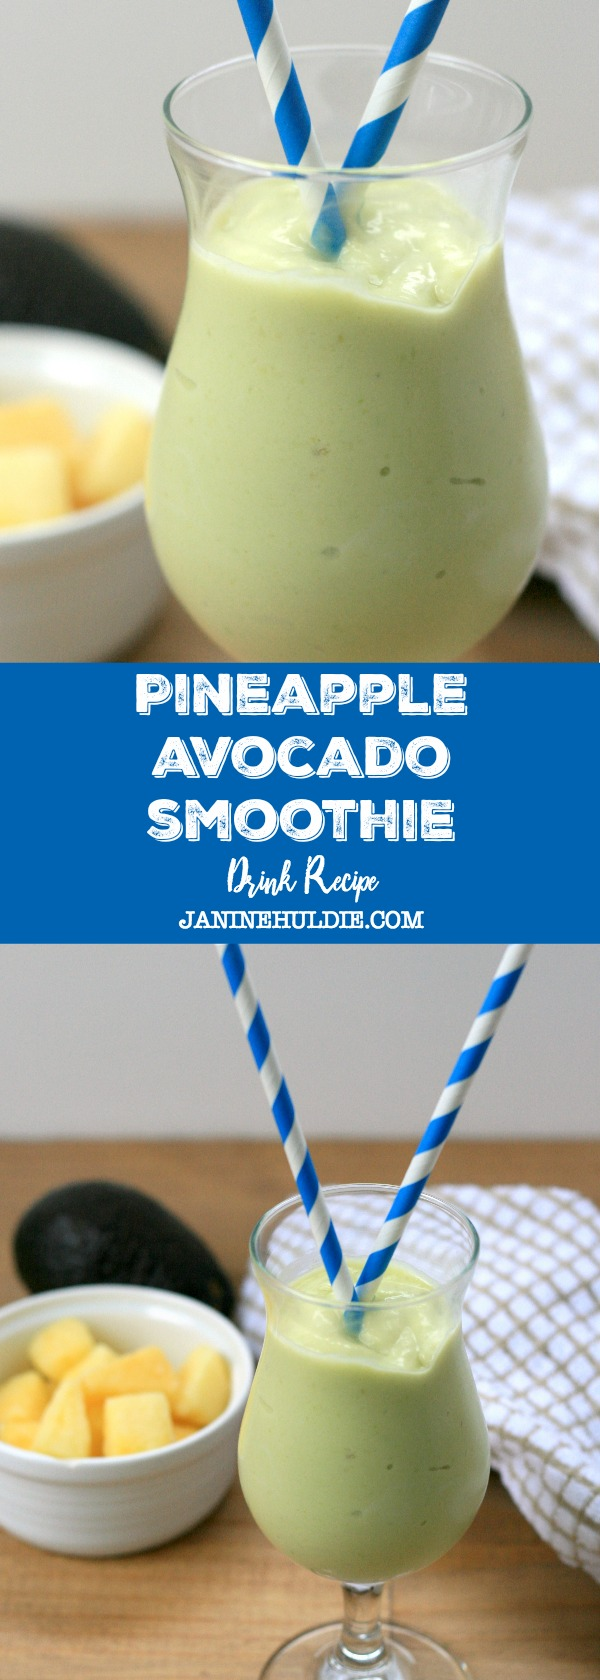 Pineapple Avocado Smoothie Recipe